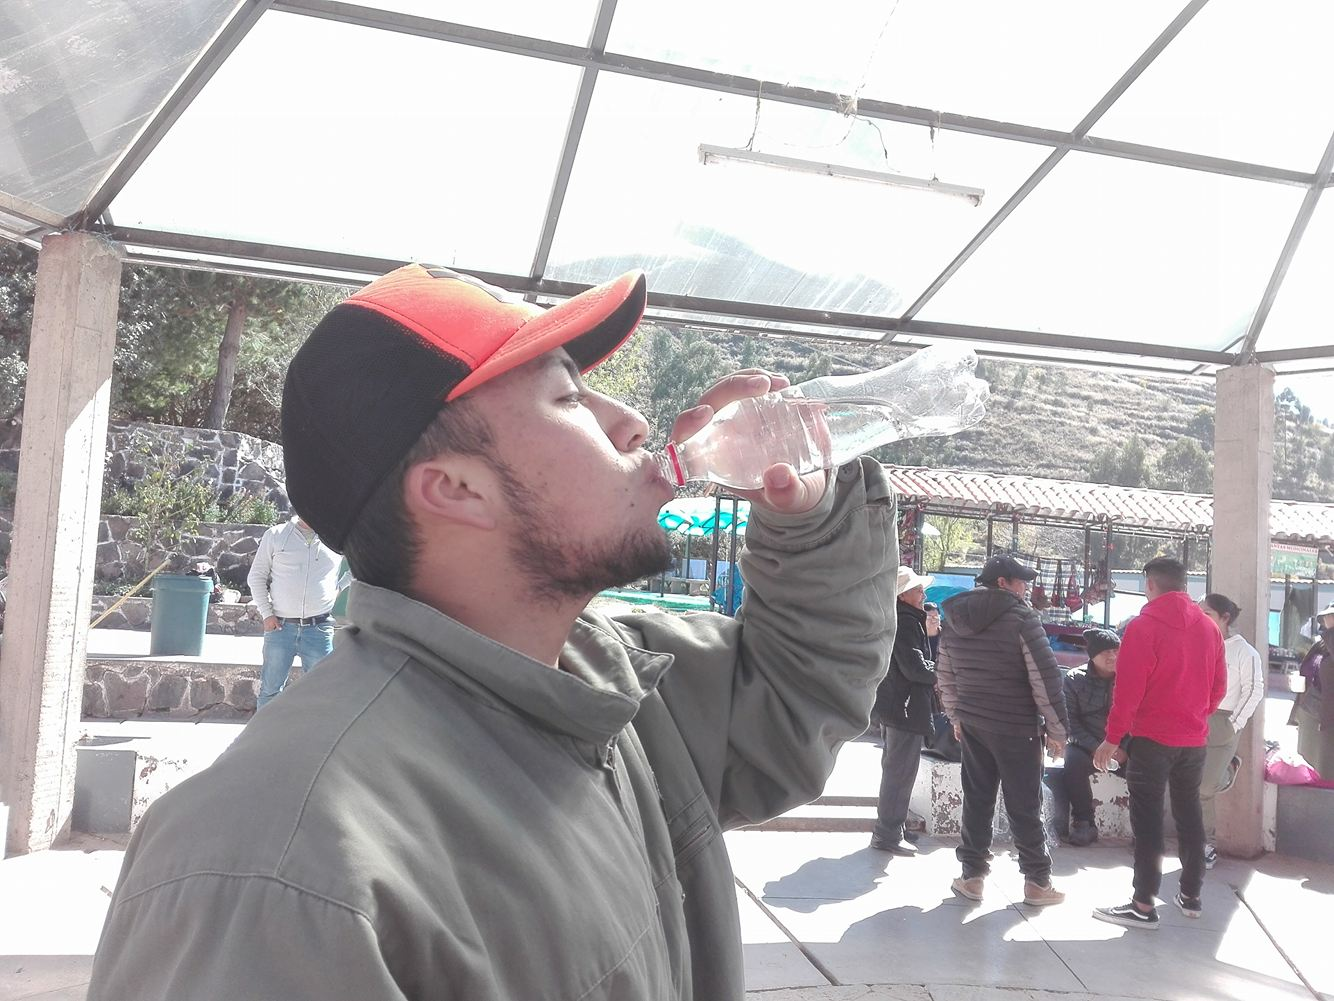 A Young Man Drinking the Medicinal Water (Photo: Brayan Coraza Morveli)